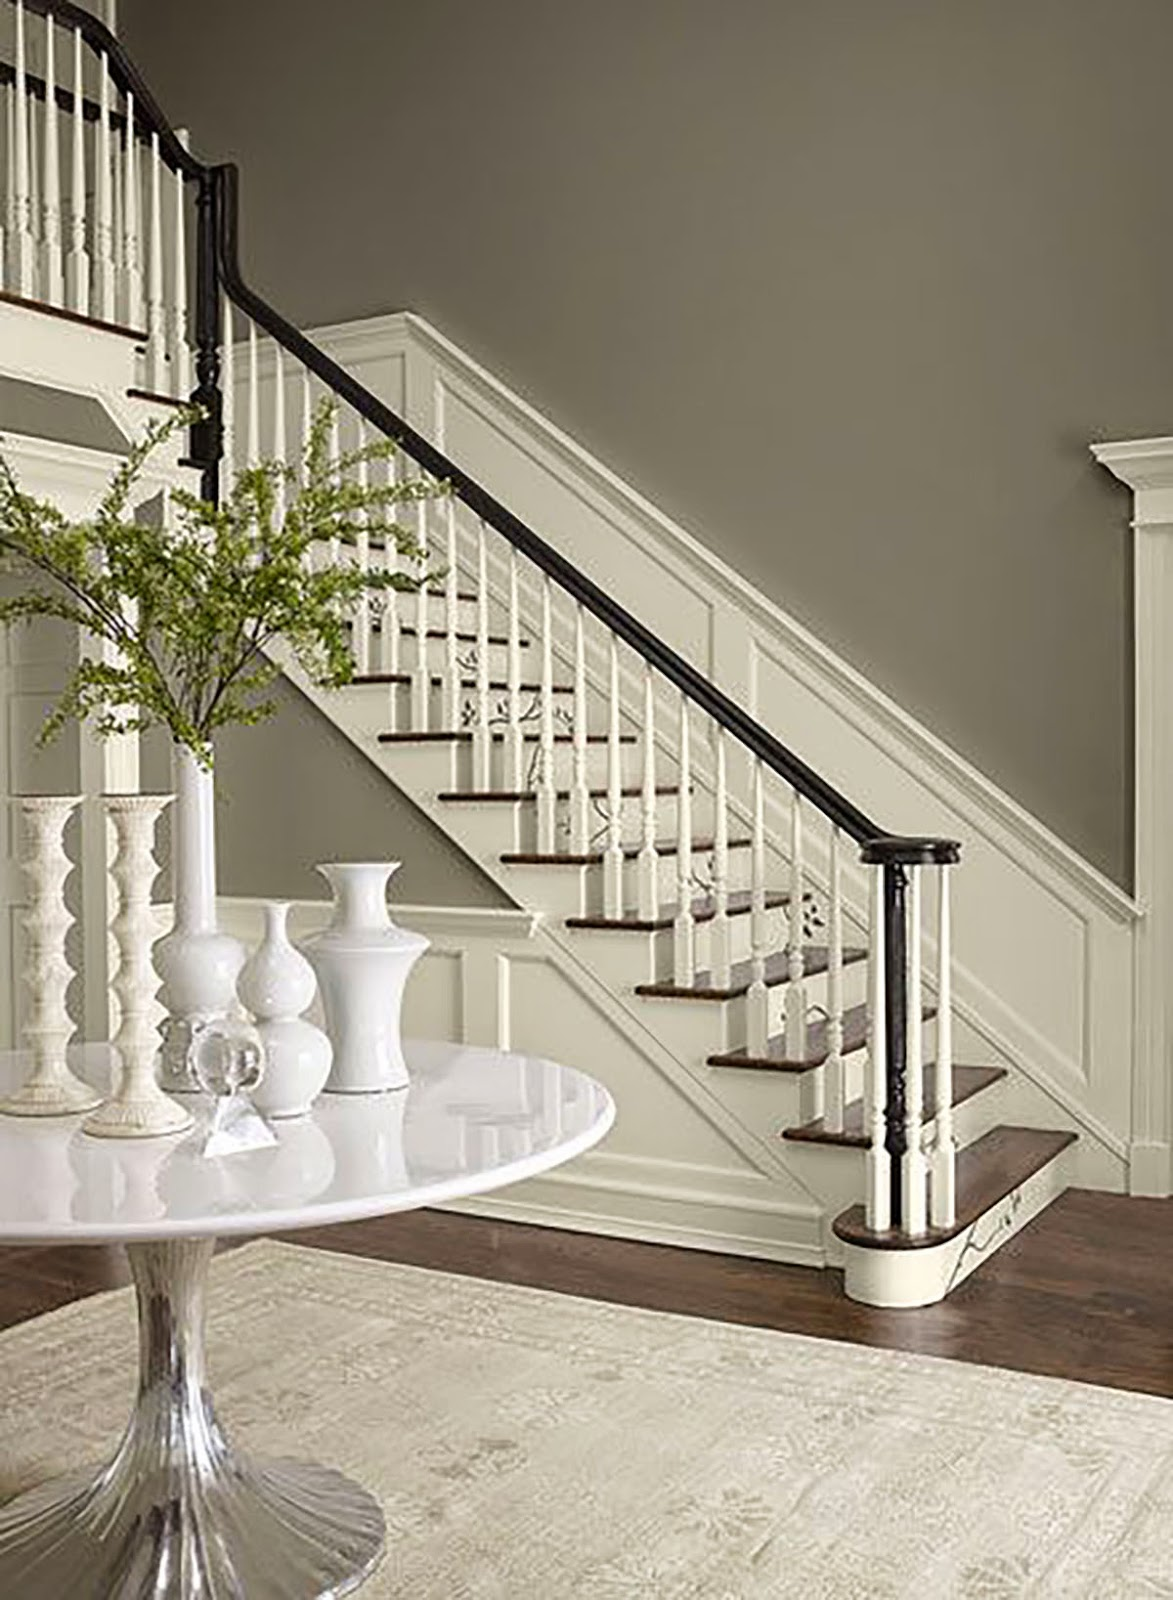 Simply life design easy diy staircase update for Easy stairs diy